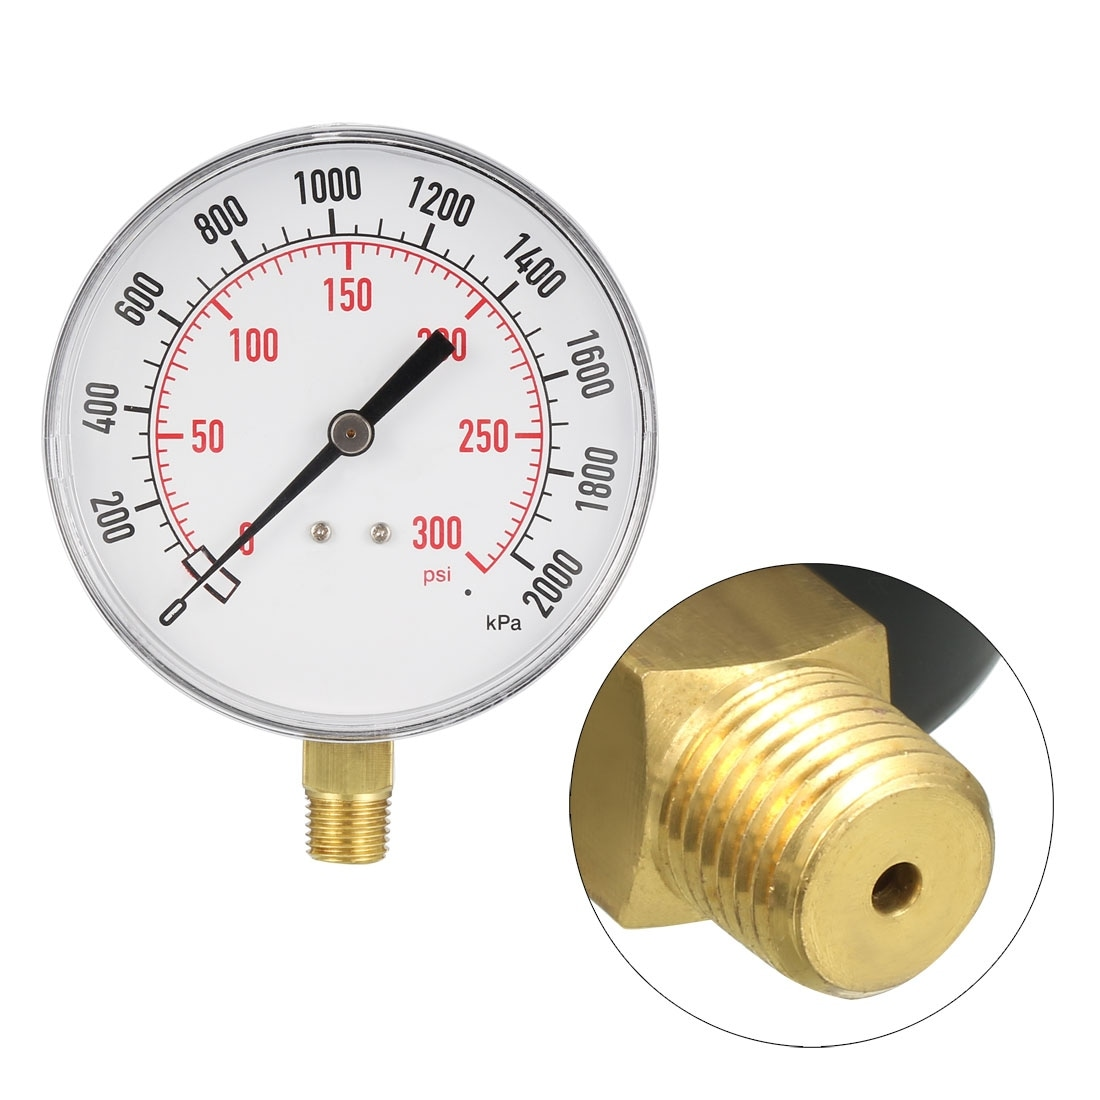 4 dial Lower Mount 4 dial 1//4 NPT Stainless Steel Connection Trerice 700SS4002LD100 Industrial Gauge dual scale 0 to 60 psi//KPA 1//4 NPT Stainless Steel Connection